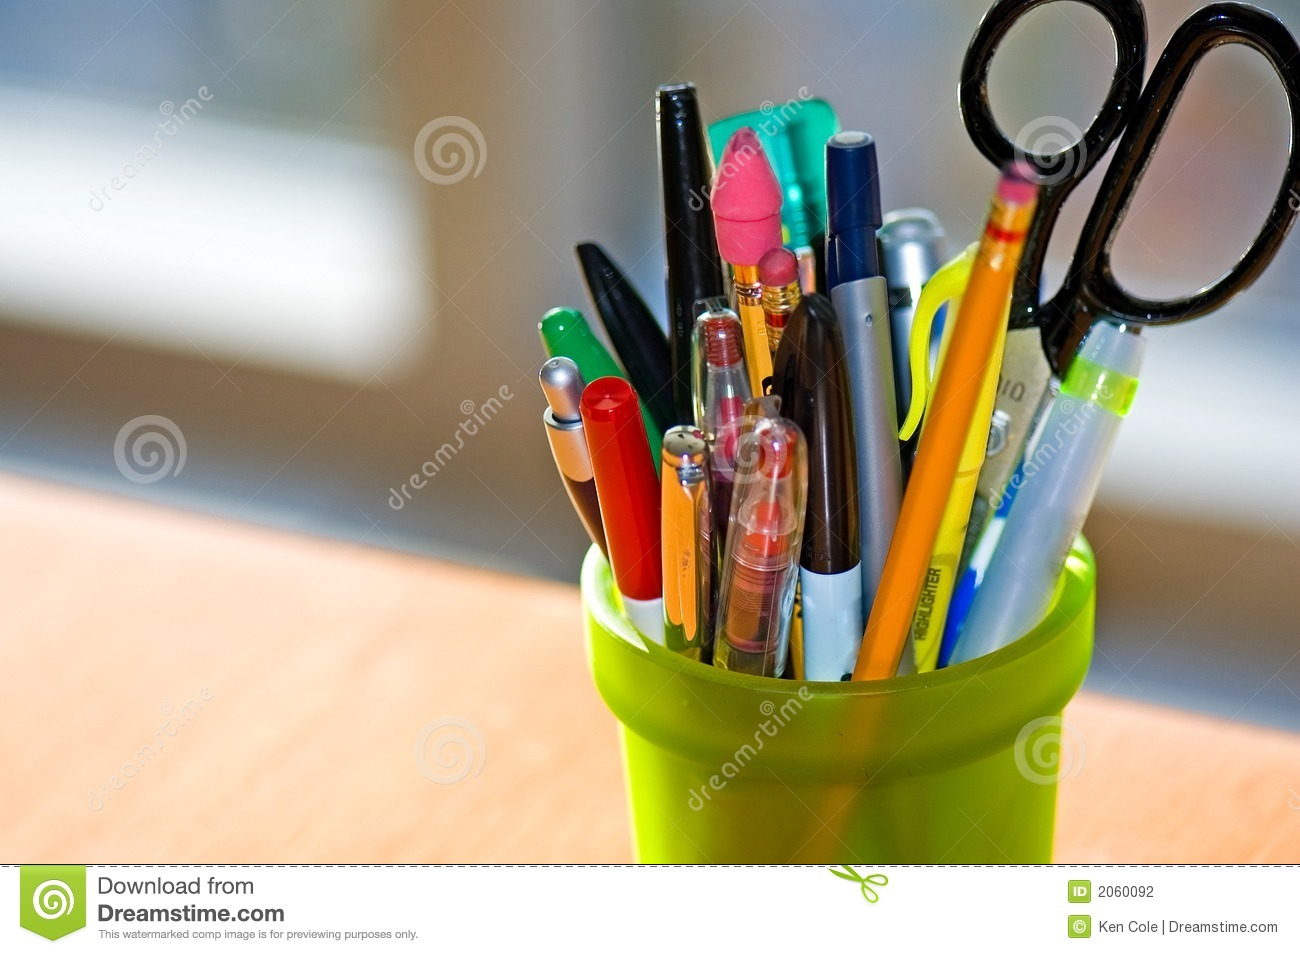 Pen And Pencil Holder For Desk Pen And Pencil Holder On Desk Stock Photography Image